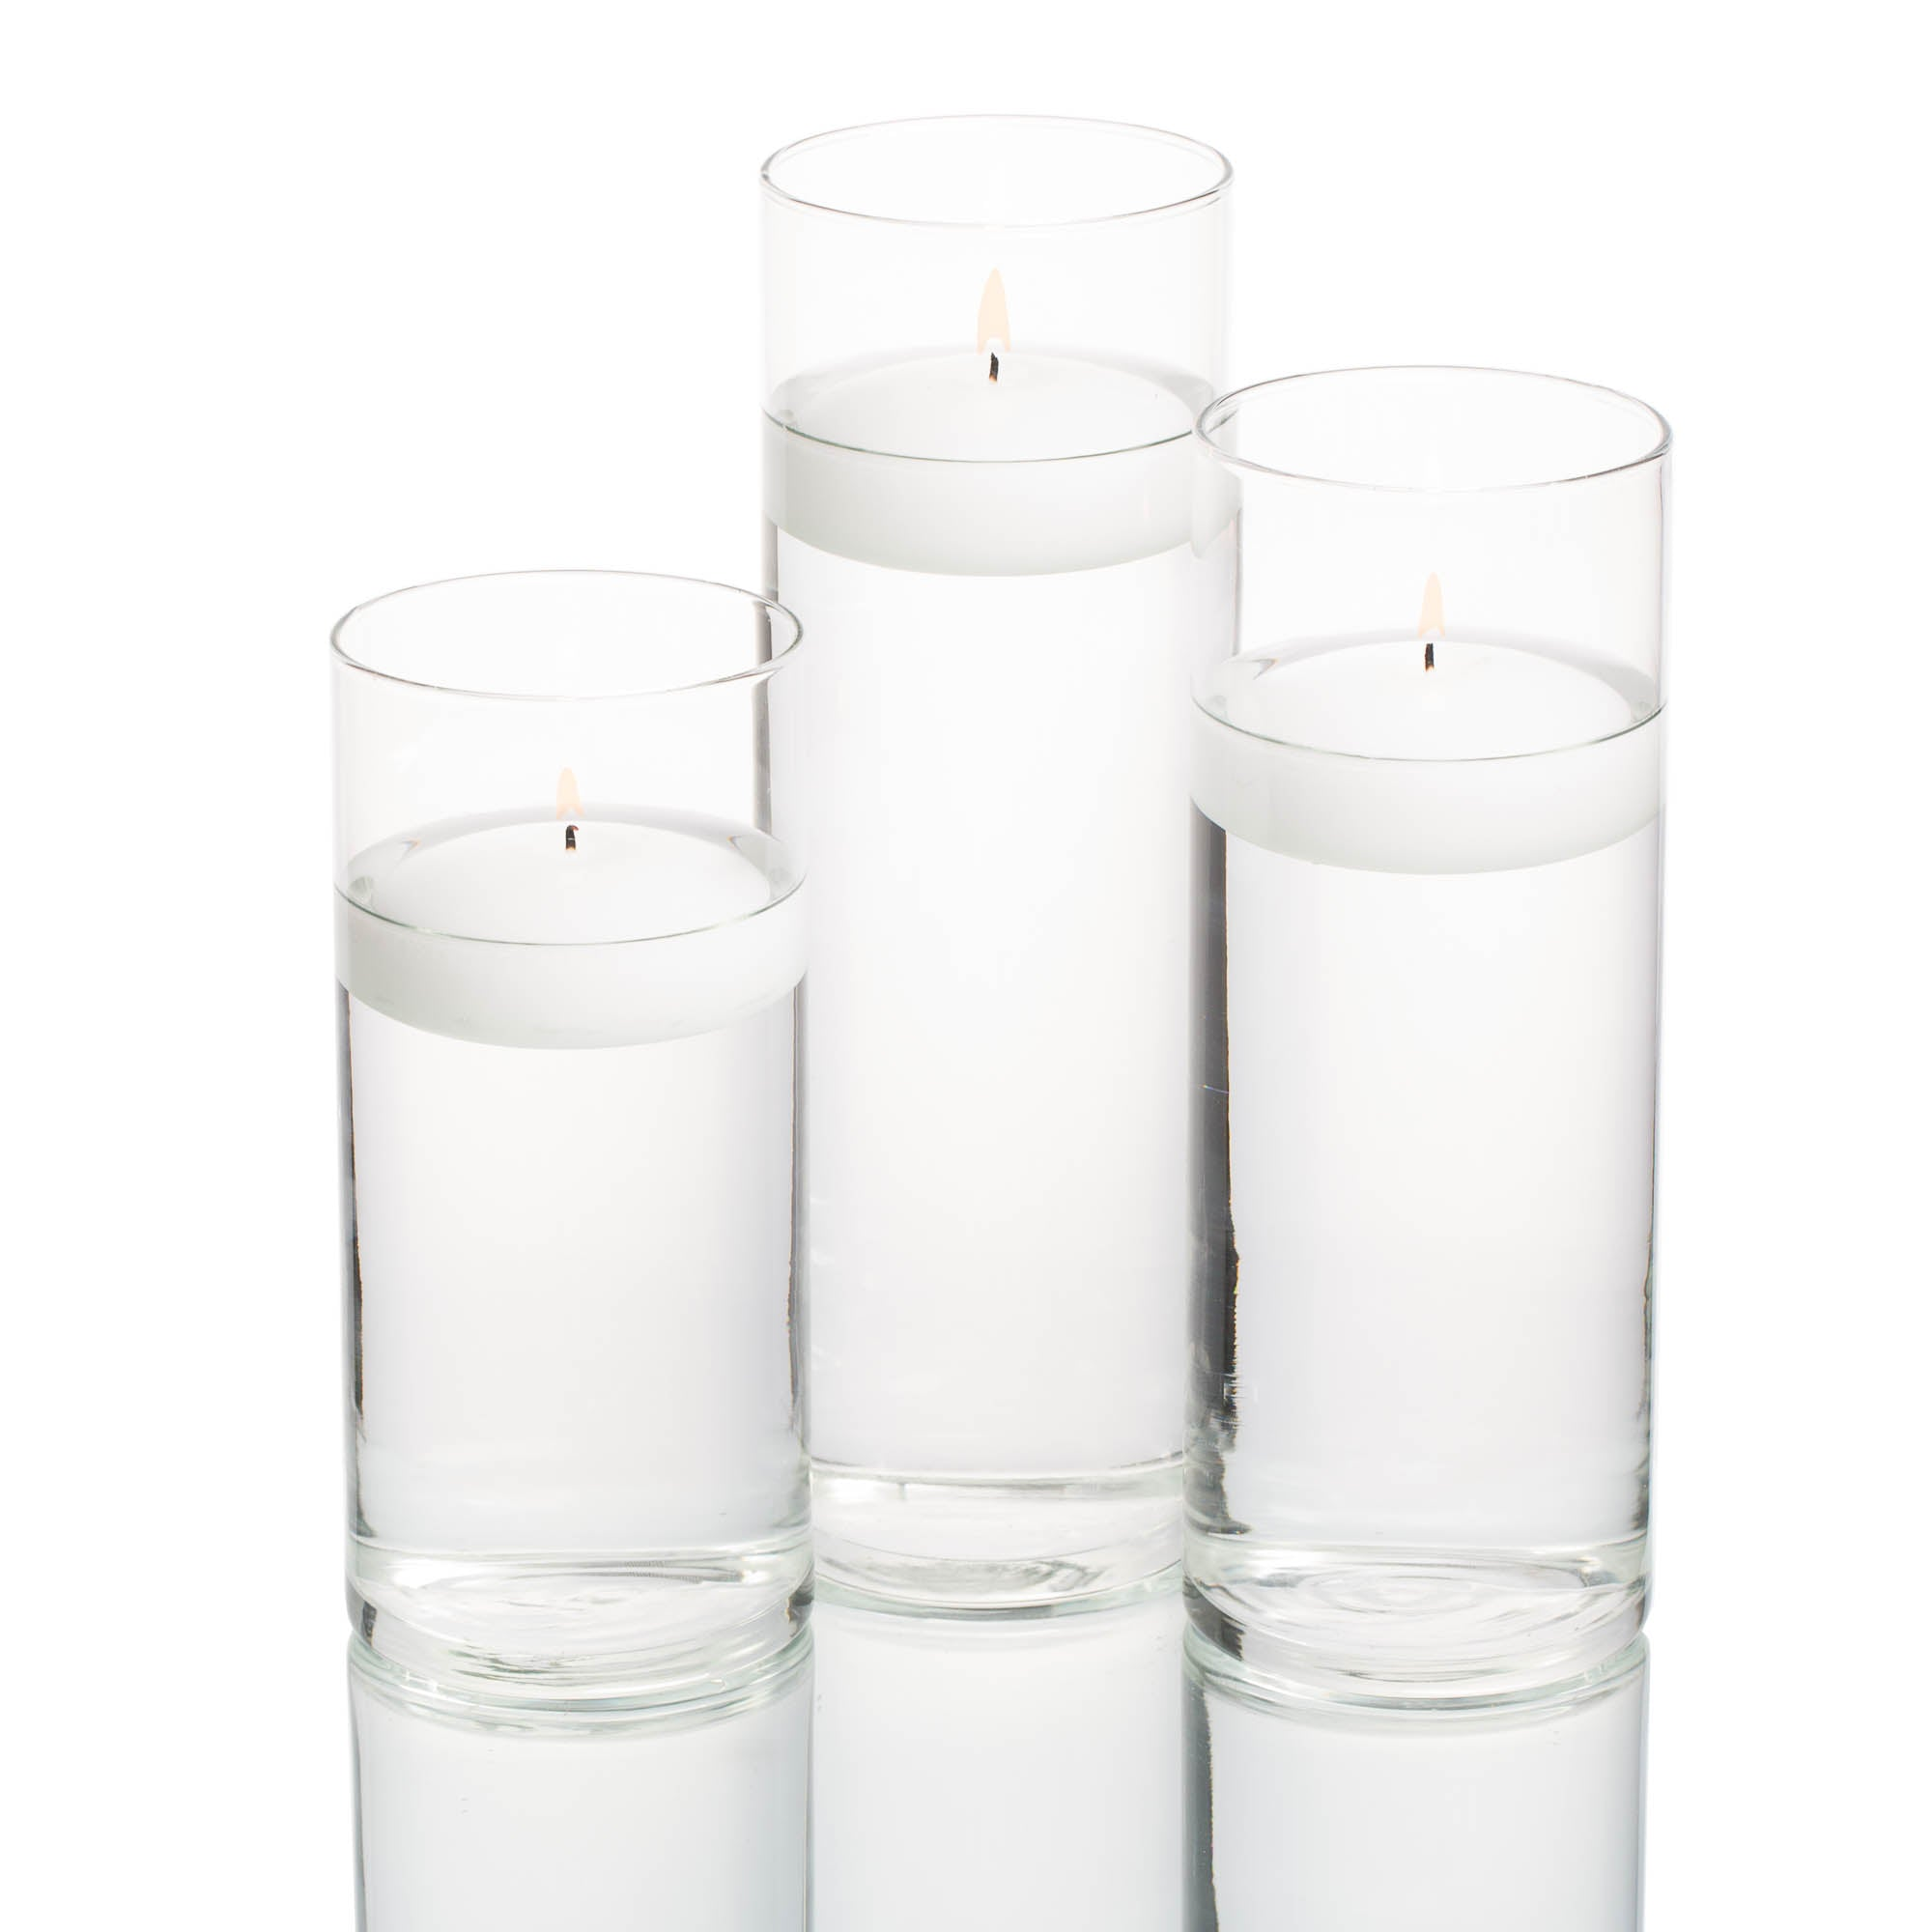 Richland Floating Candles and Cylinder Holders